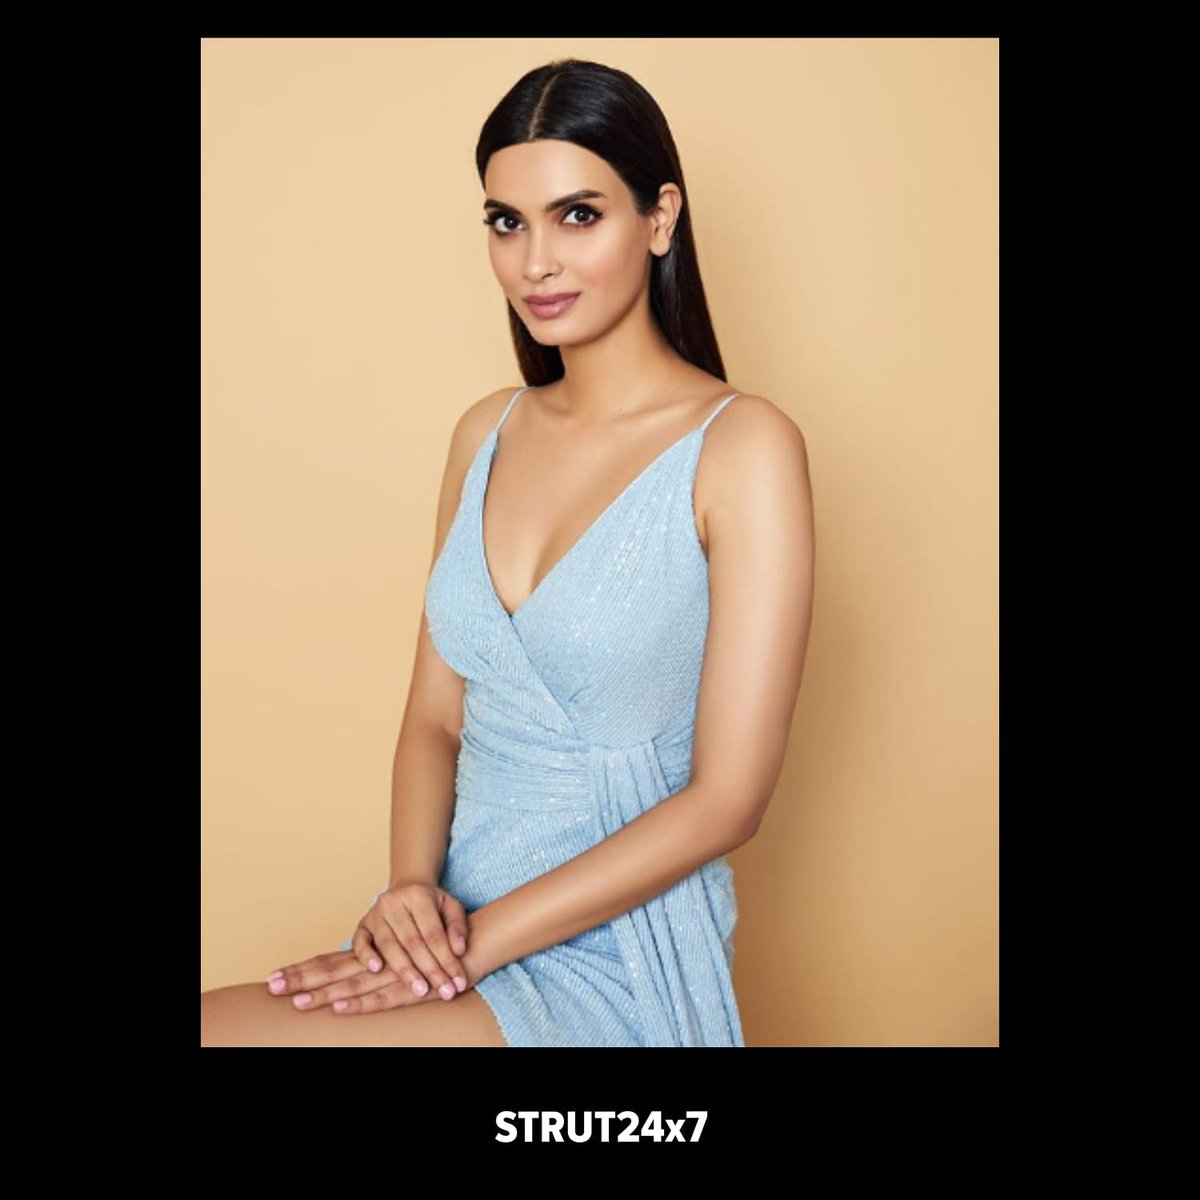 Hey hey #ShraddhaMishra we're loving this precise eye makeup with dense eyeliner and perfectly crafted brows. And paired with the glistening base and sleek stunning hair, this look is terrific for @DianaPenty   #EyemakeupTips #BrowShape #DianaPenty #Strut24x7pic.twitter.com/LjEljT3Ttn